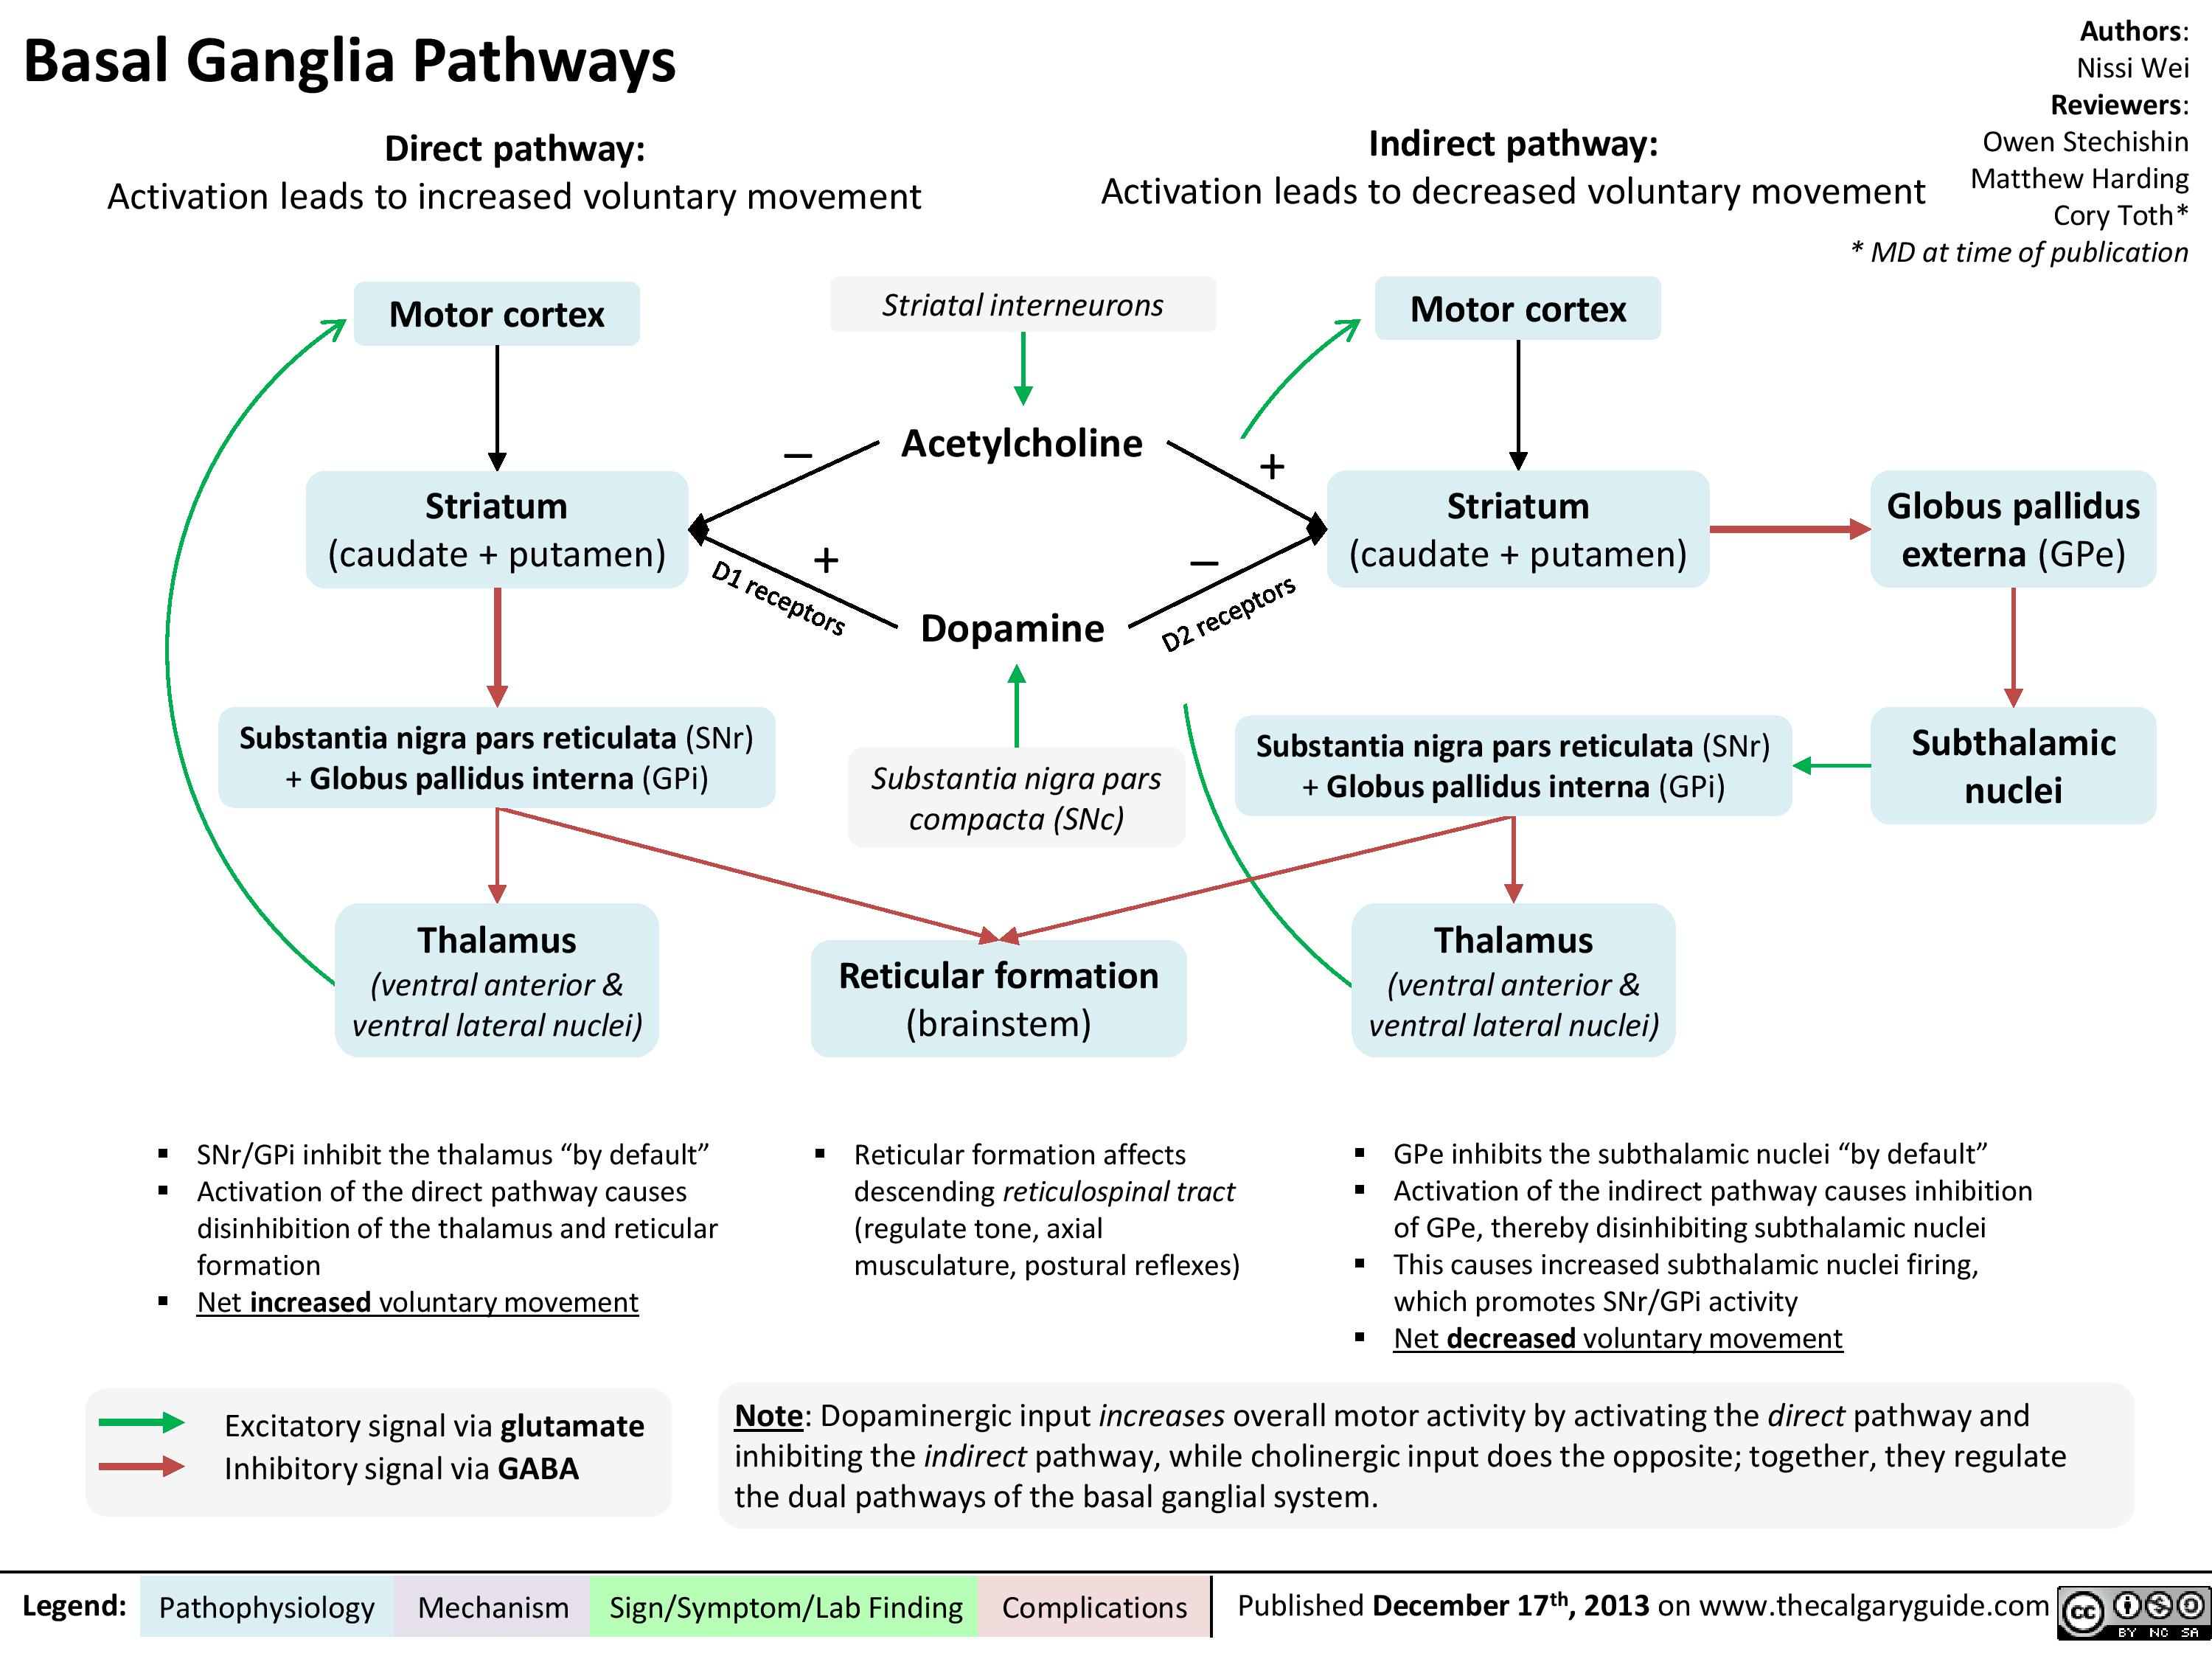 Basal ganglia pathways